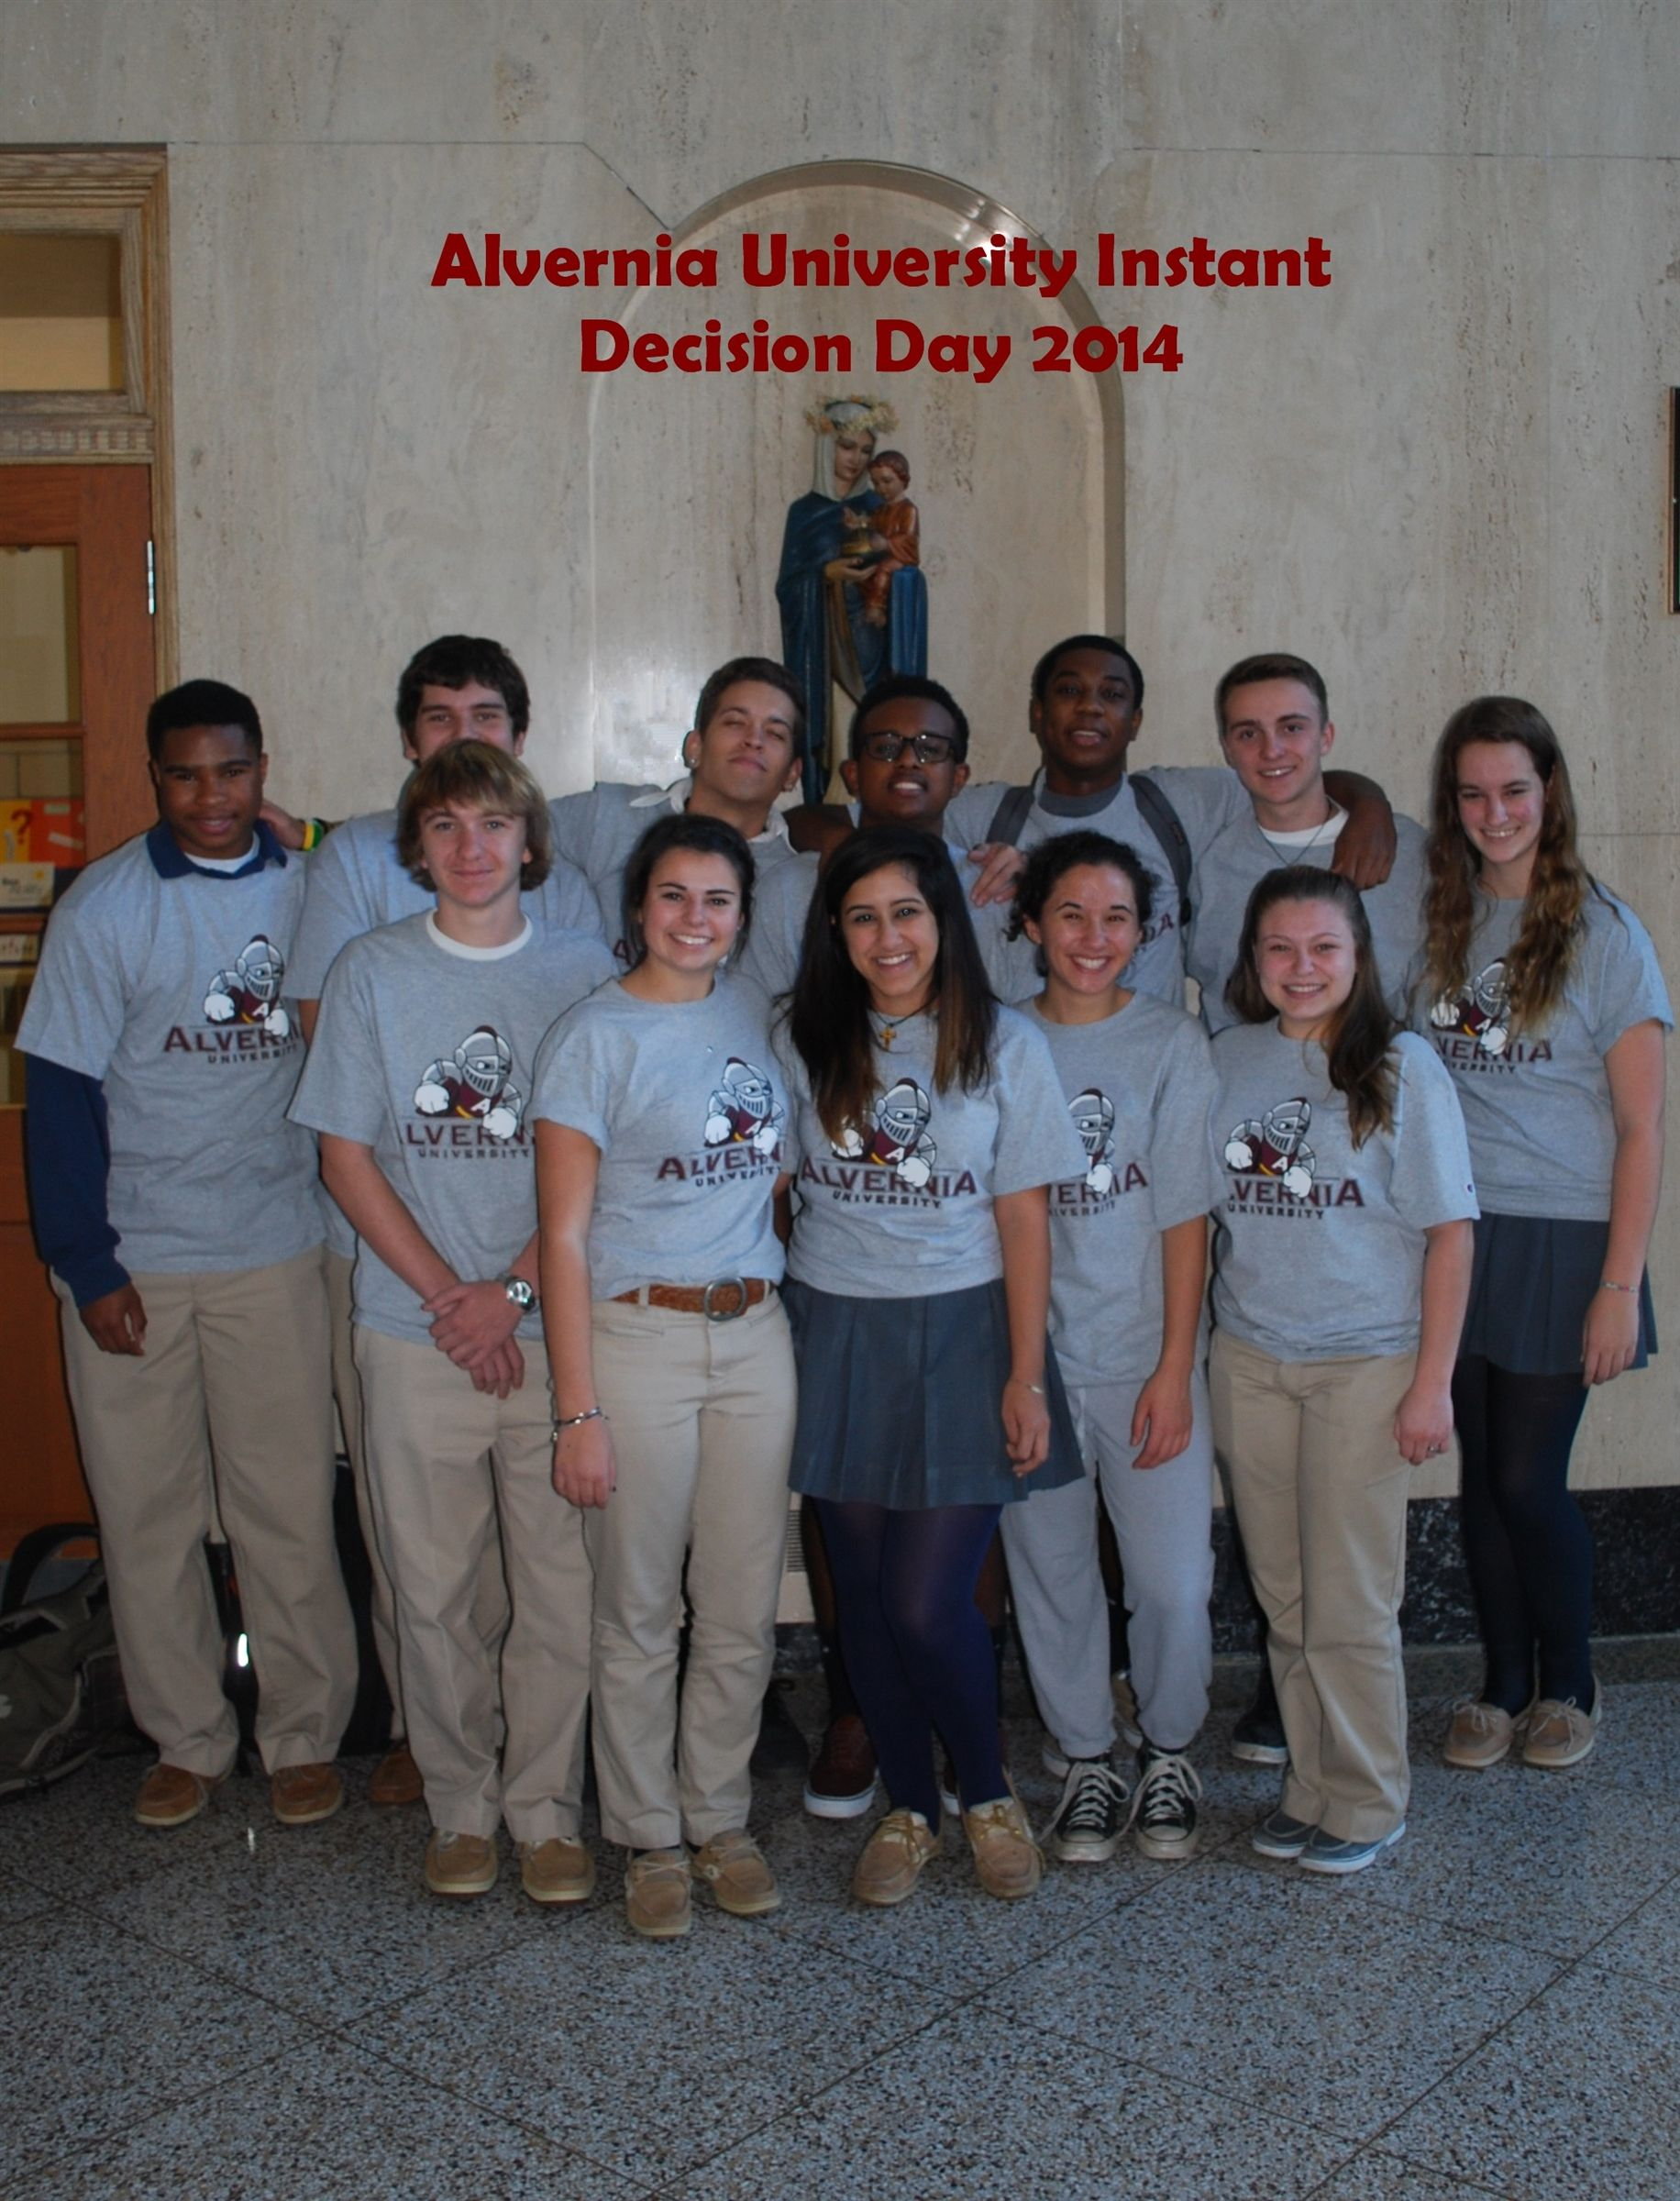 Alvernia University Instant Decision Day